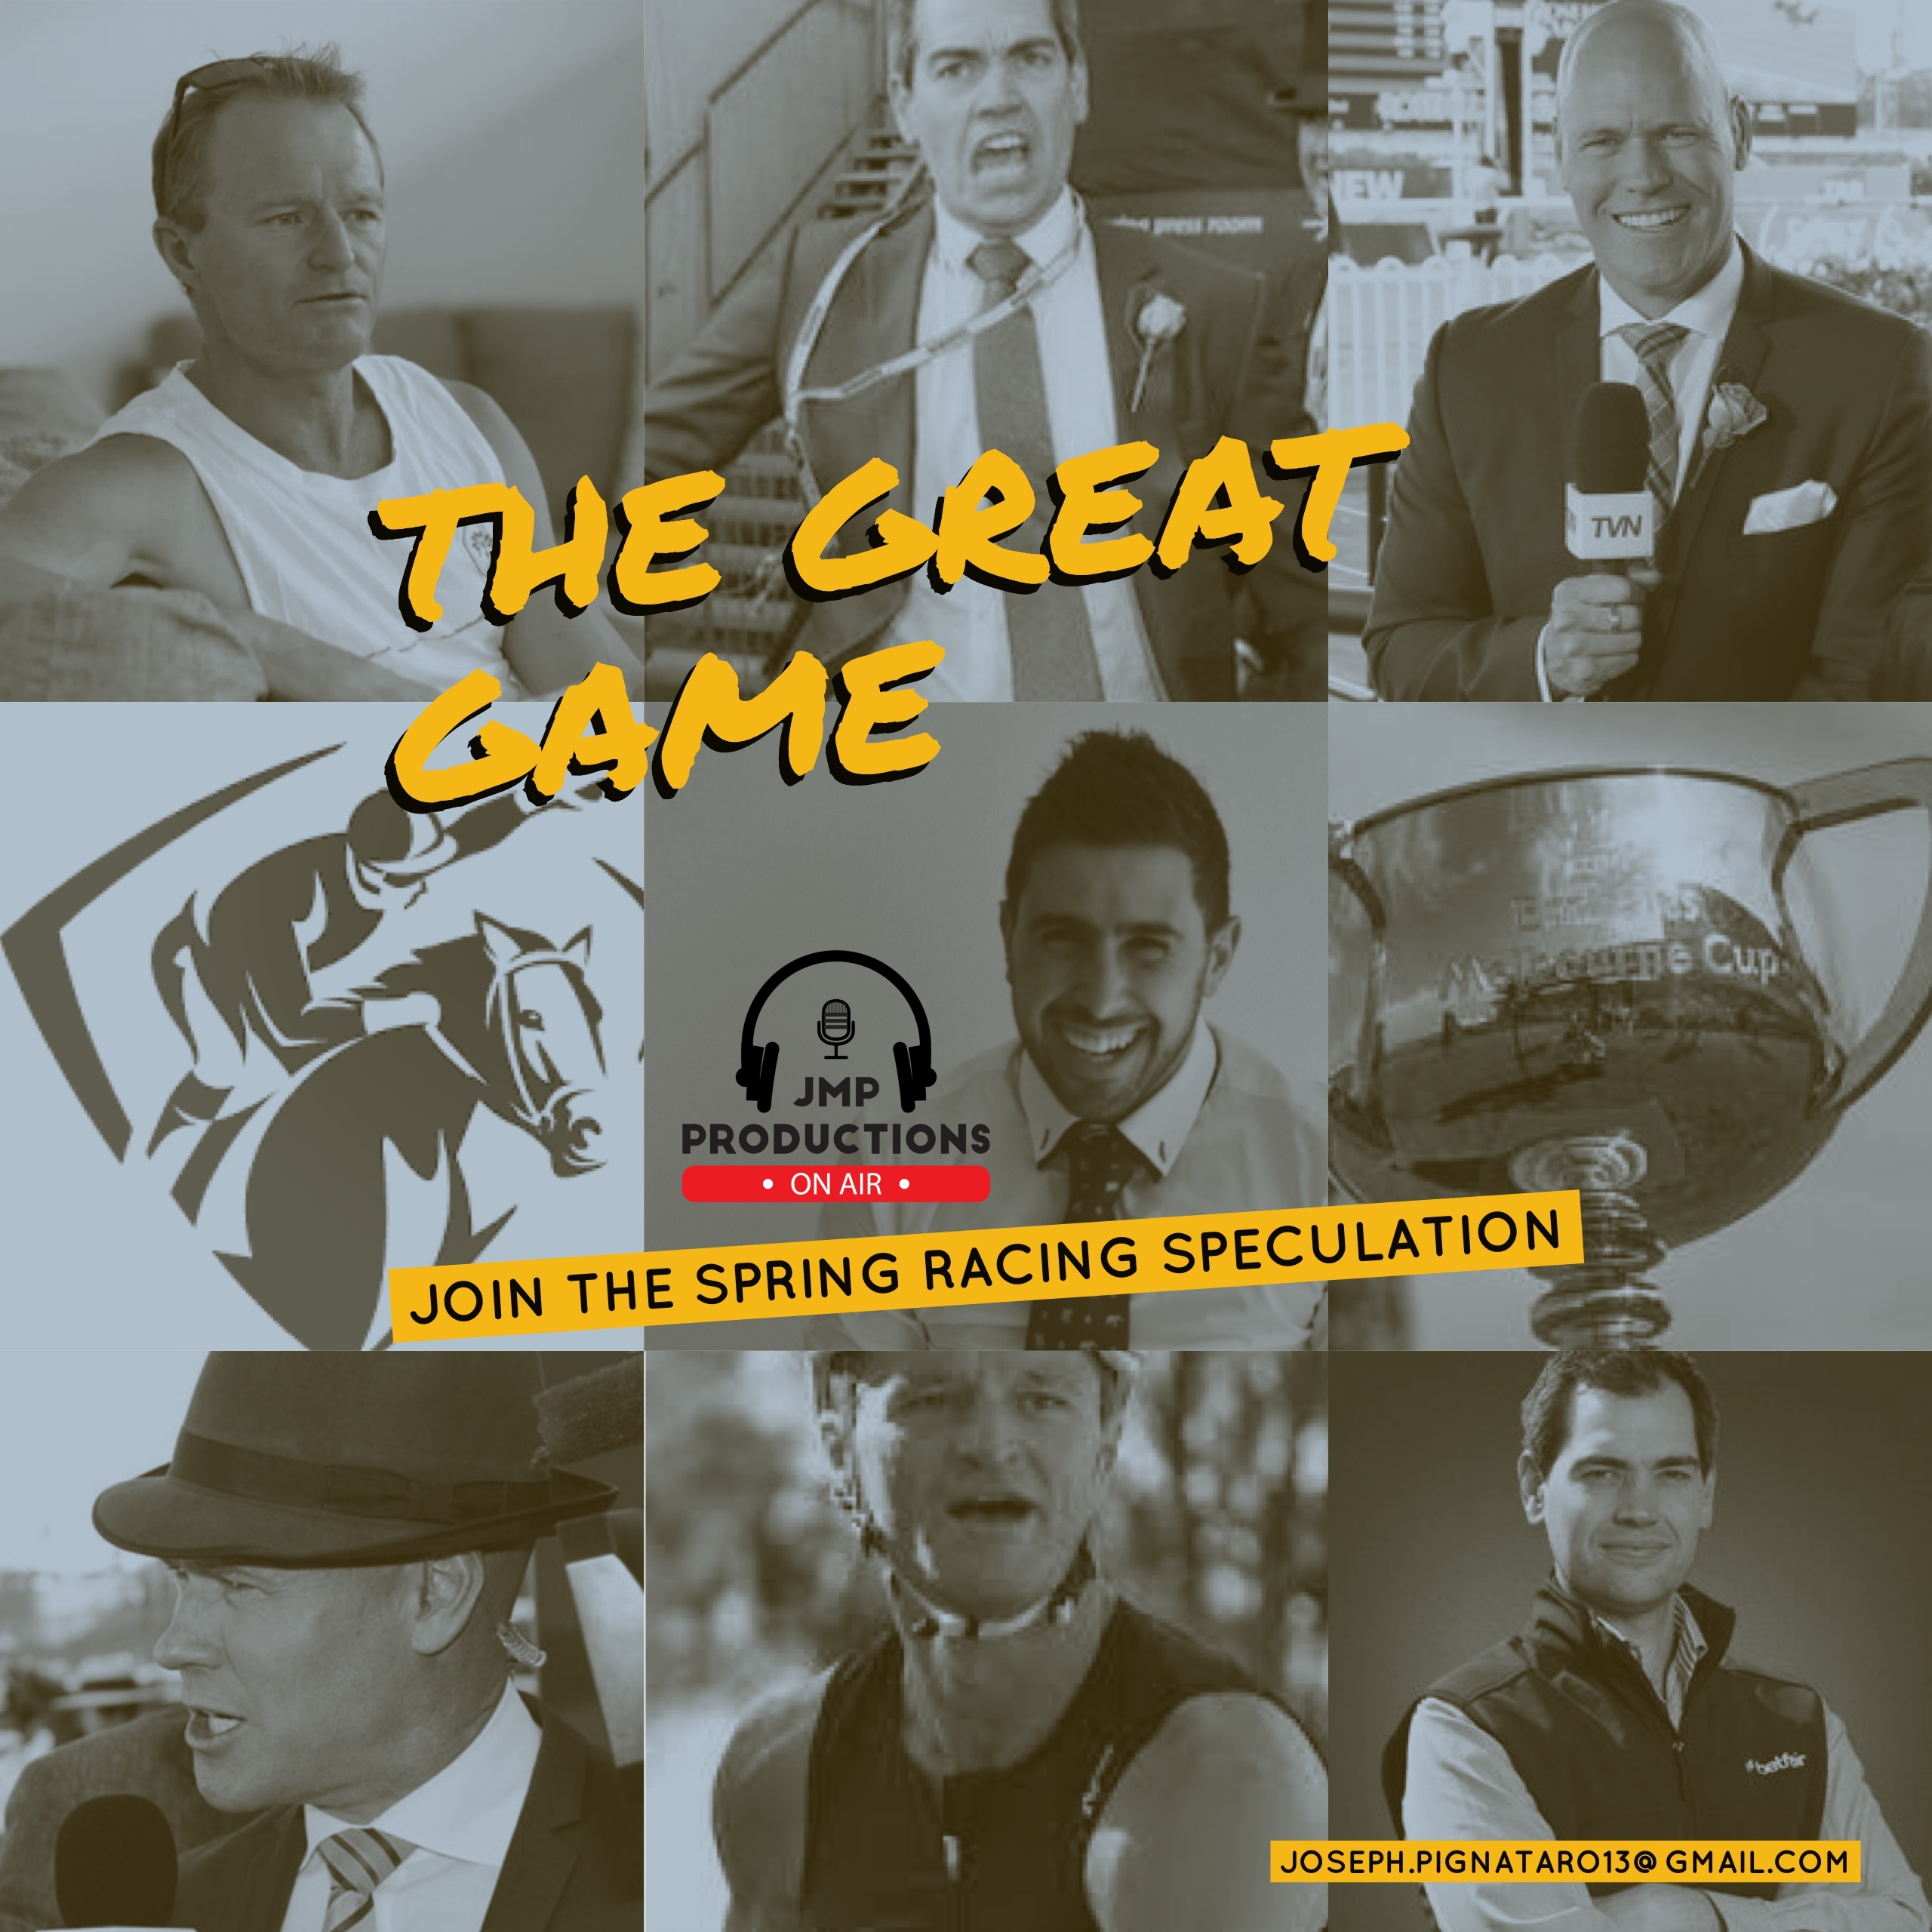 Episode 12 - The Great Game (March 7, 2019)